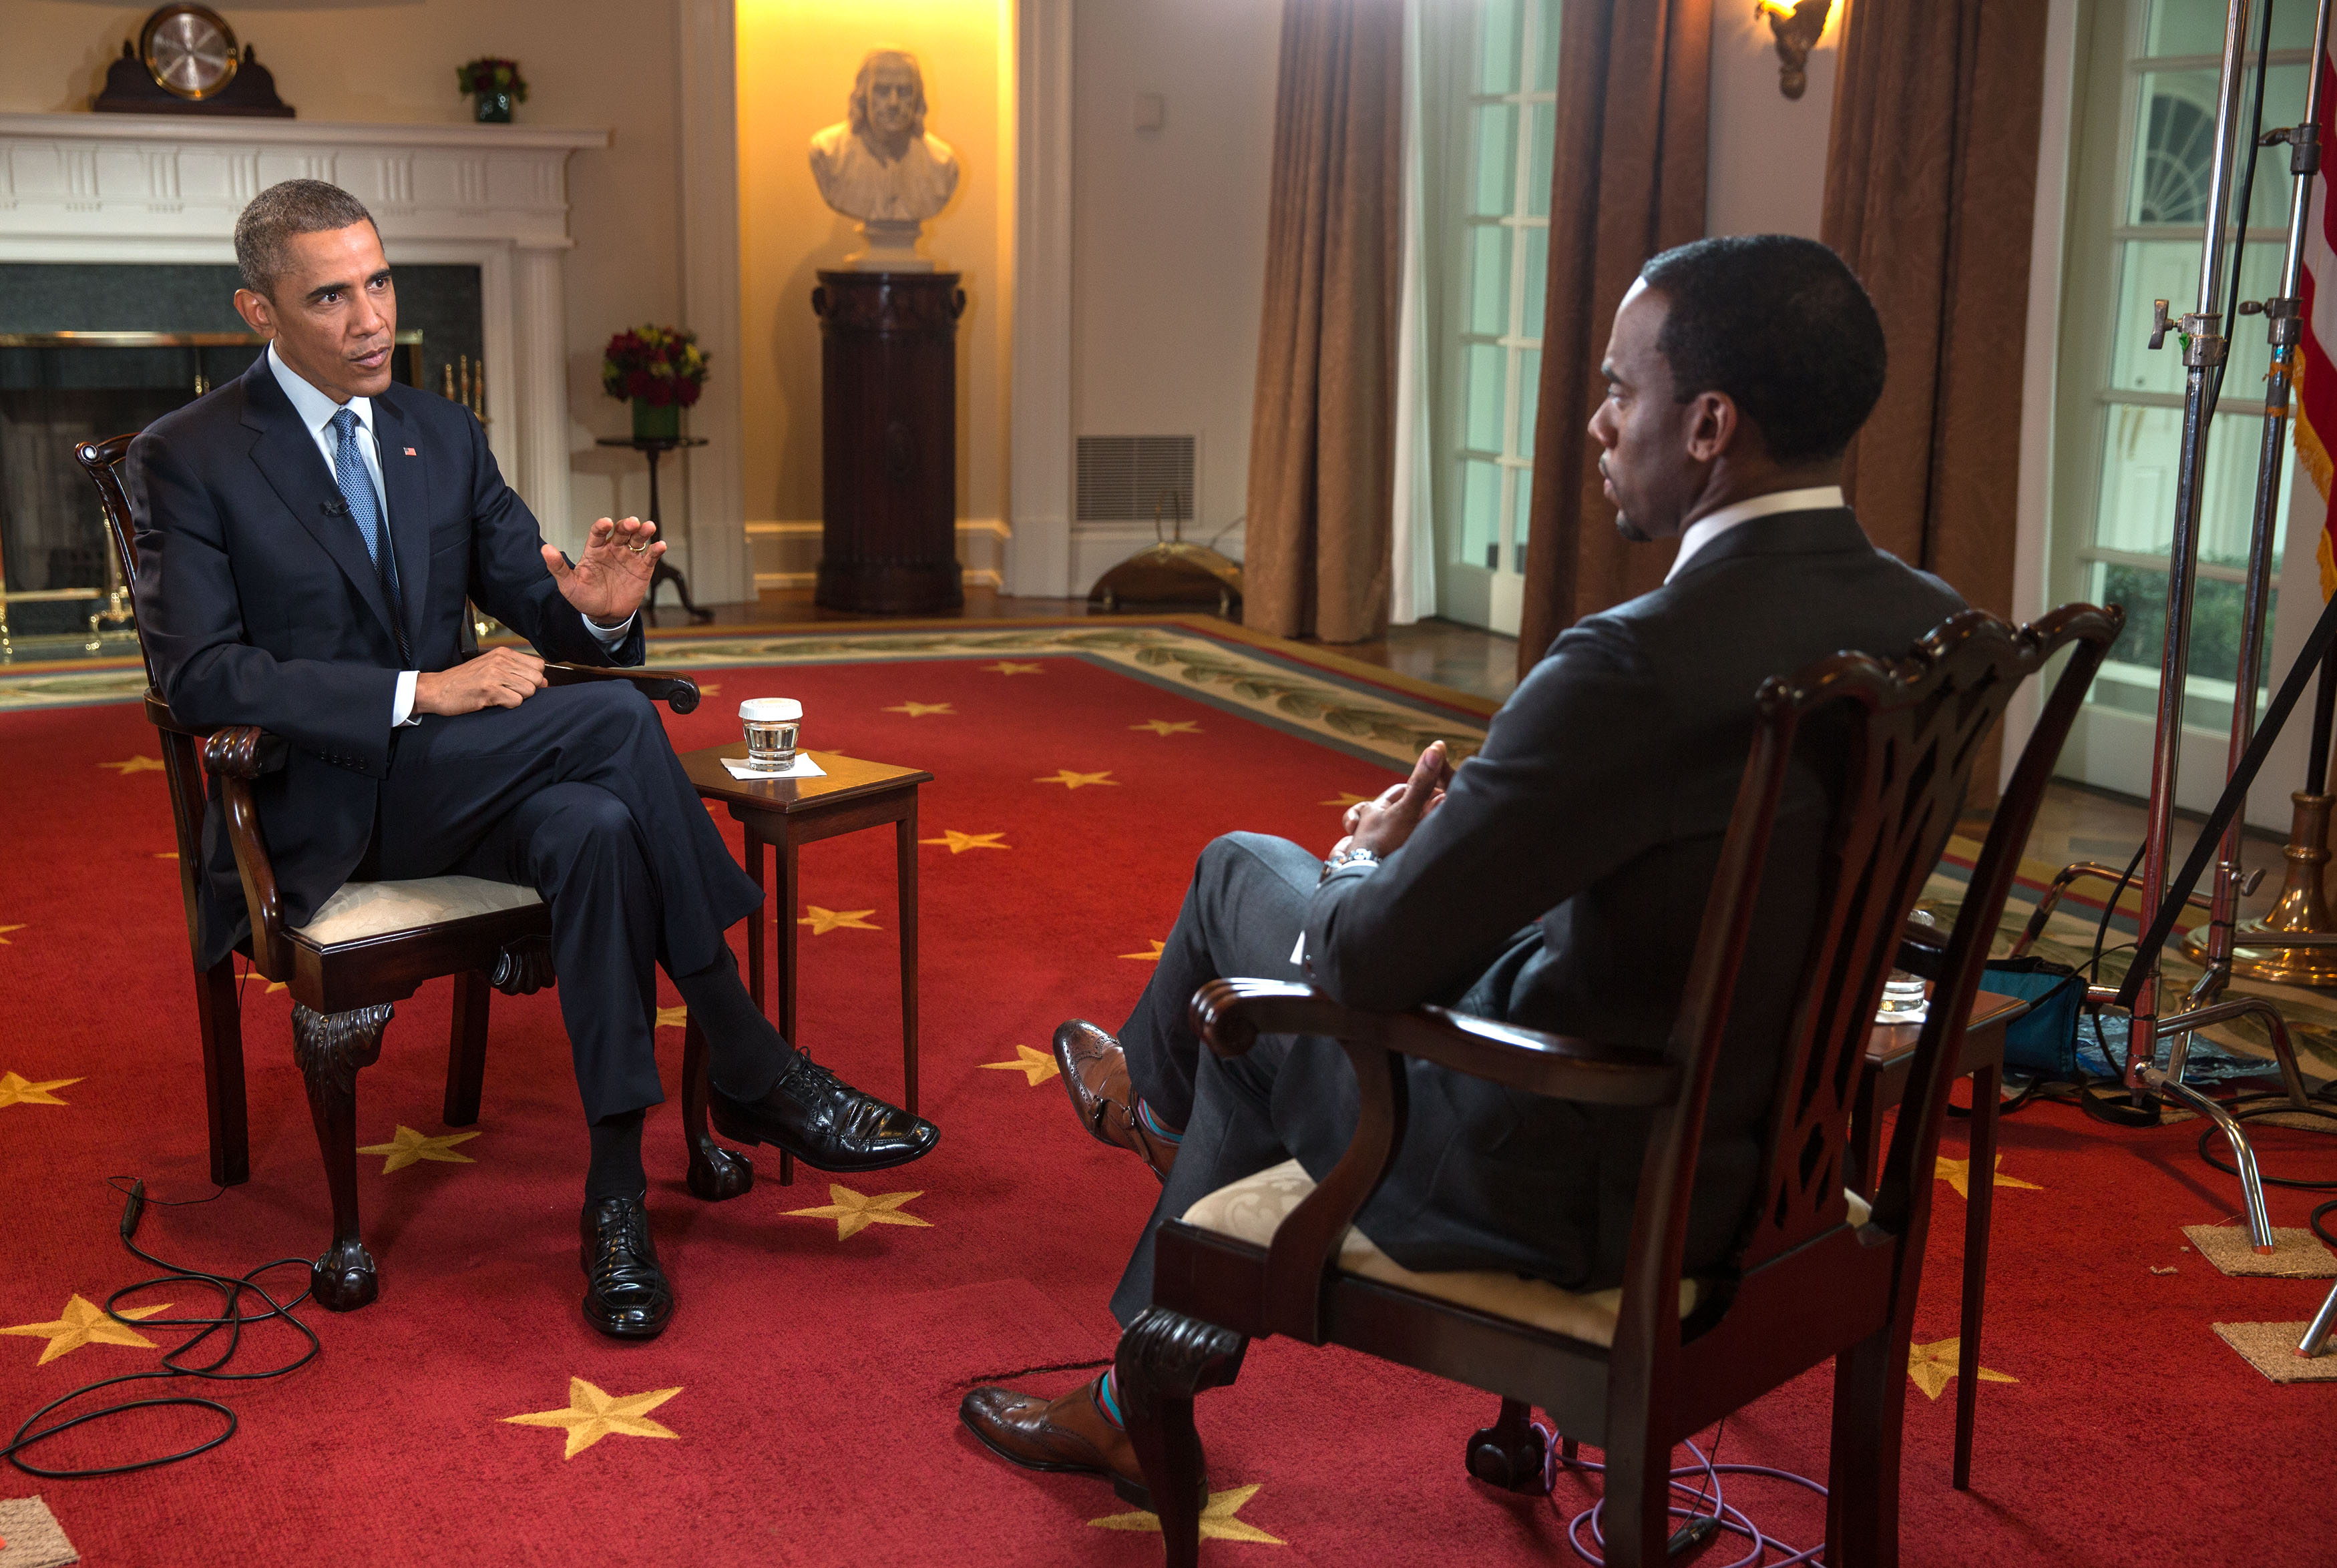 Obama And Cabinet Excerpts From President Obamas Bet Interview On Race Relations